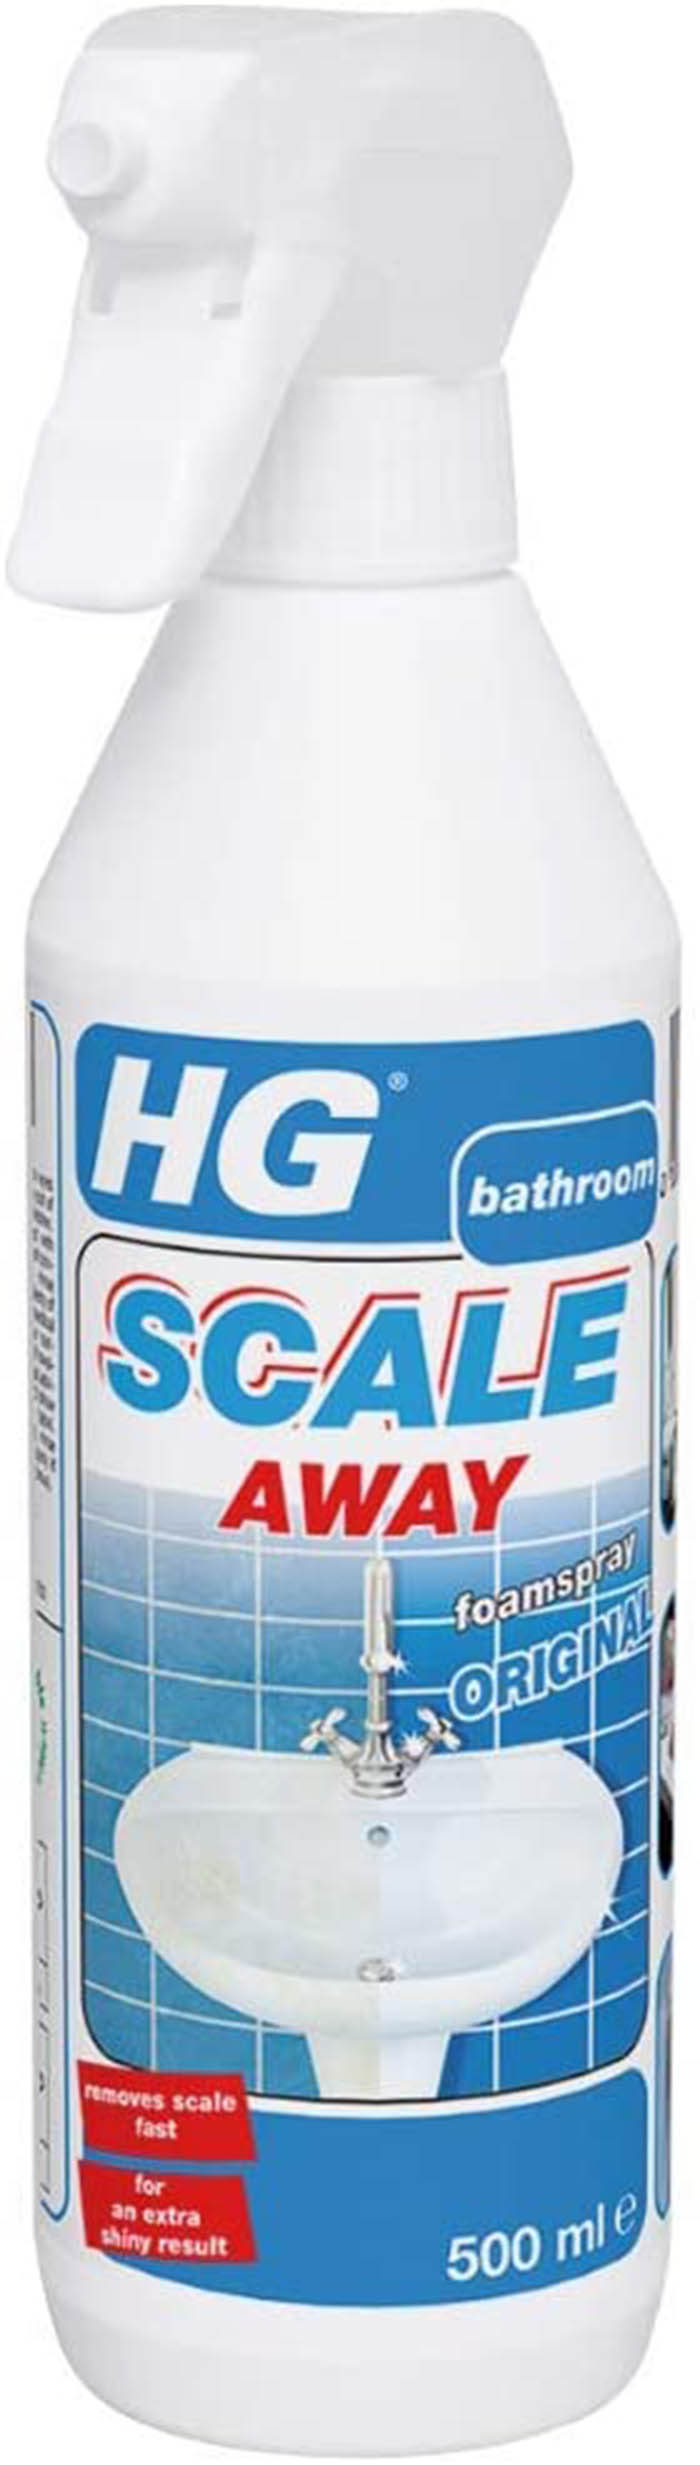 HG SCALE AWAY 500ML